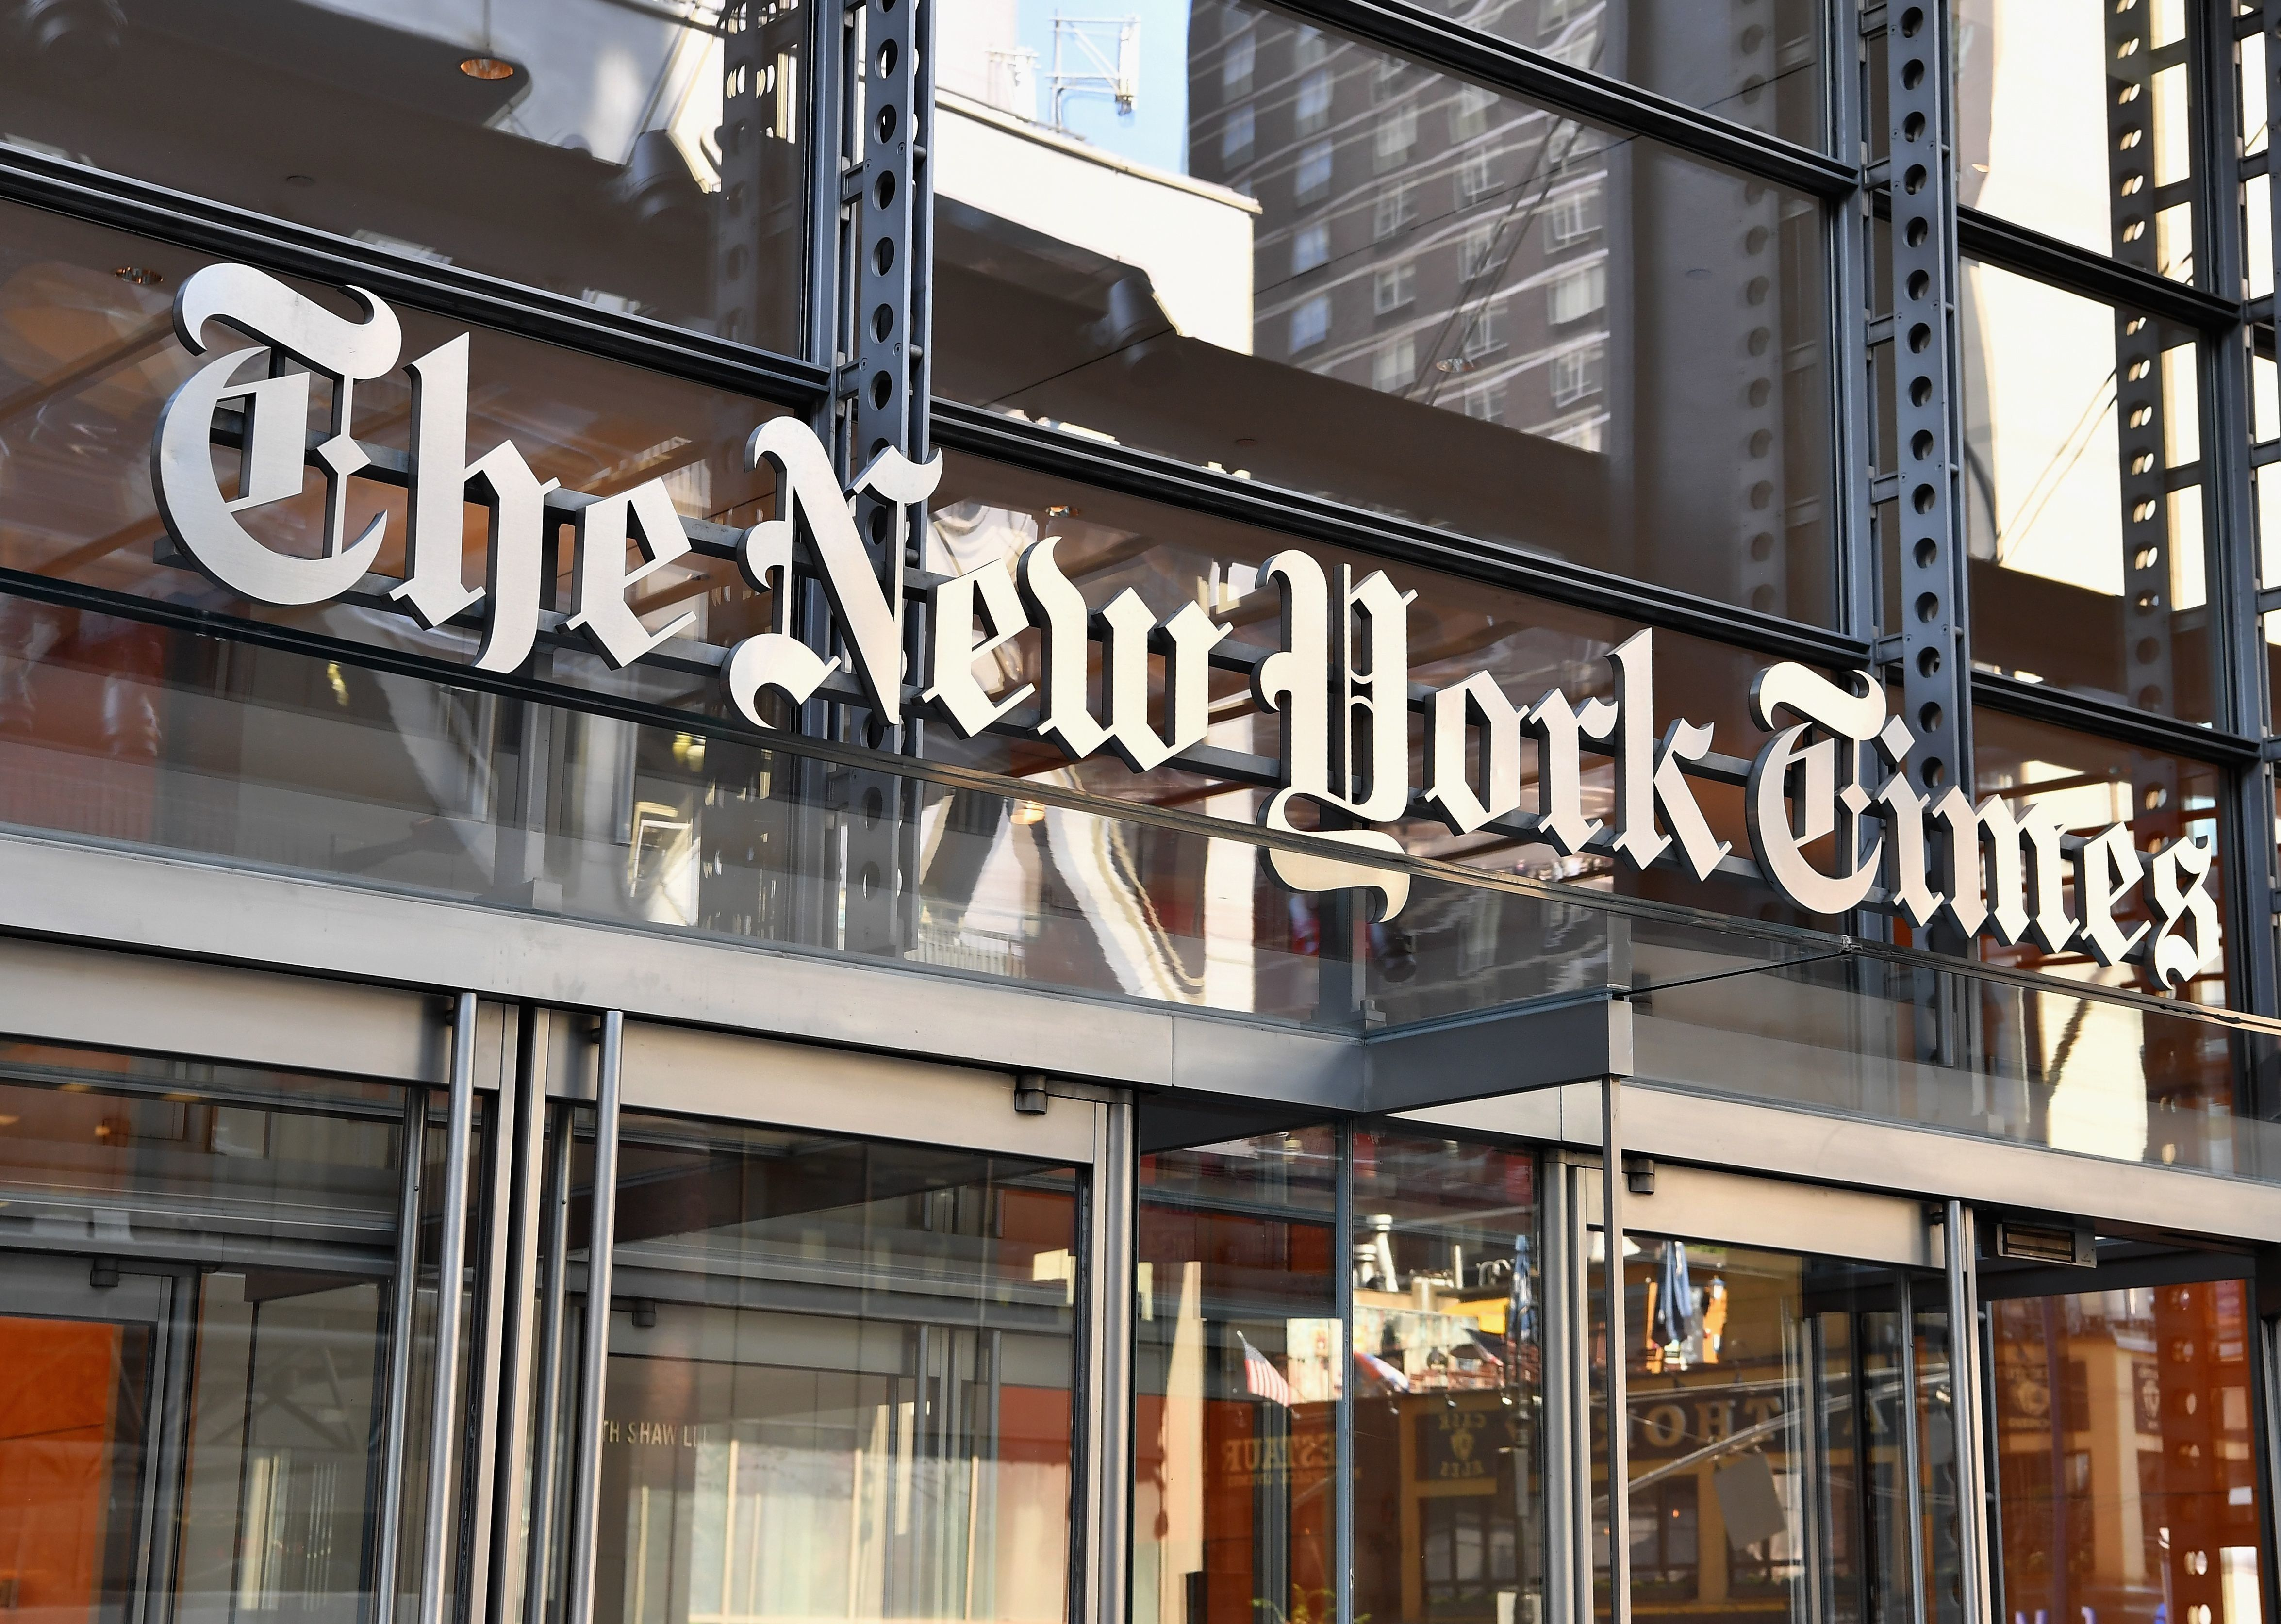 """In October 2016, The New York Times published a story titled """"Investigating Donald Trump, F.B.I. Sees No Clear Link to"""